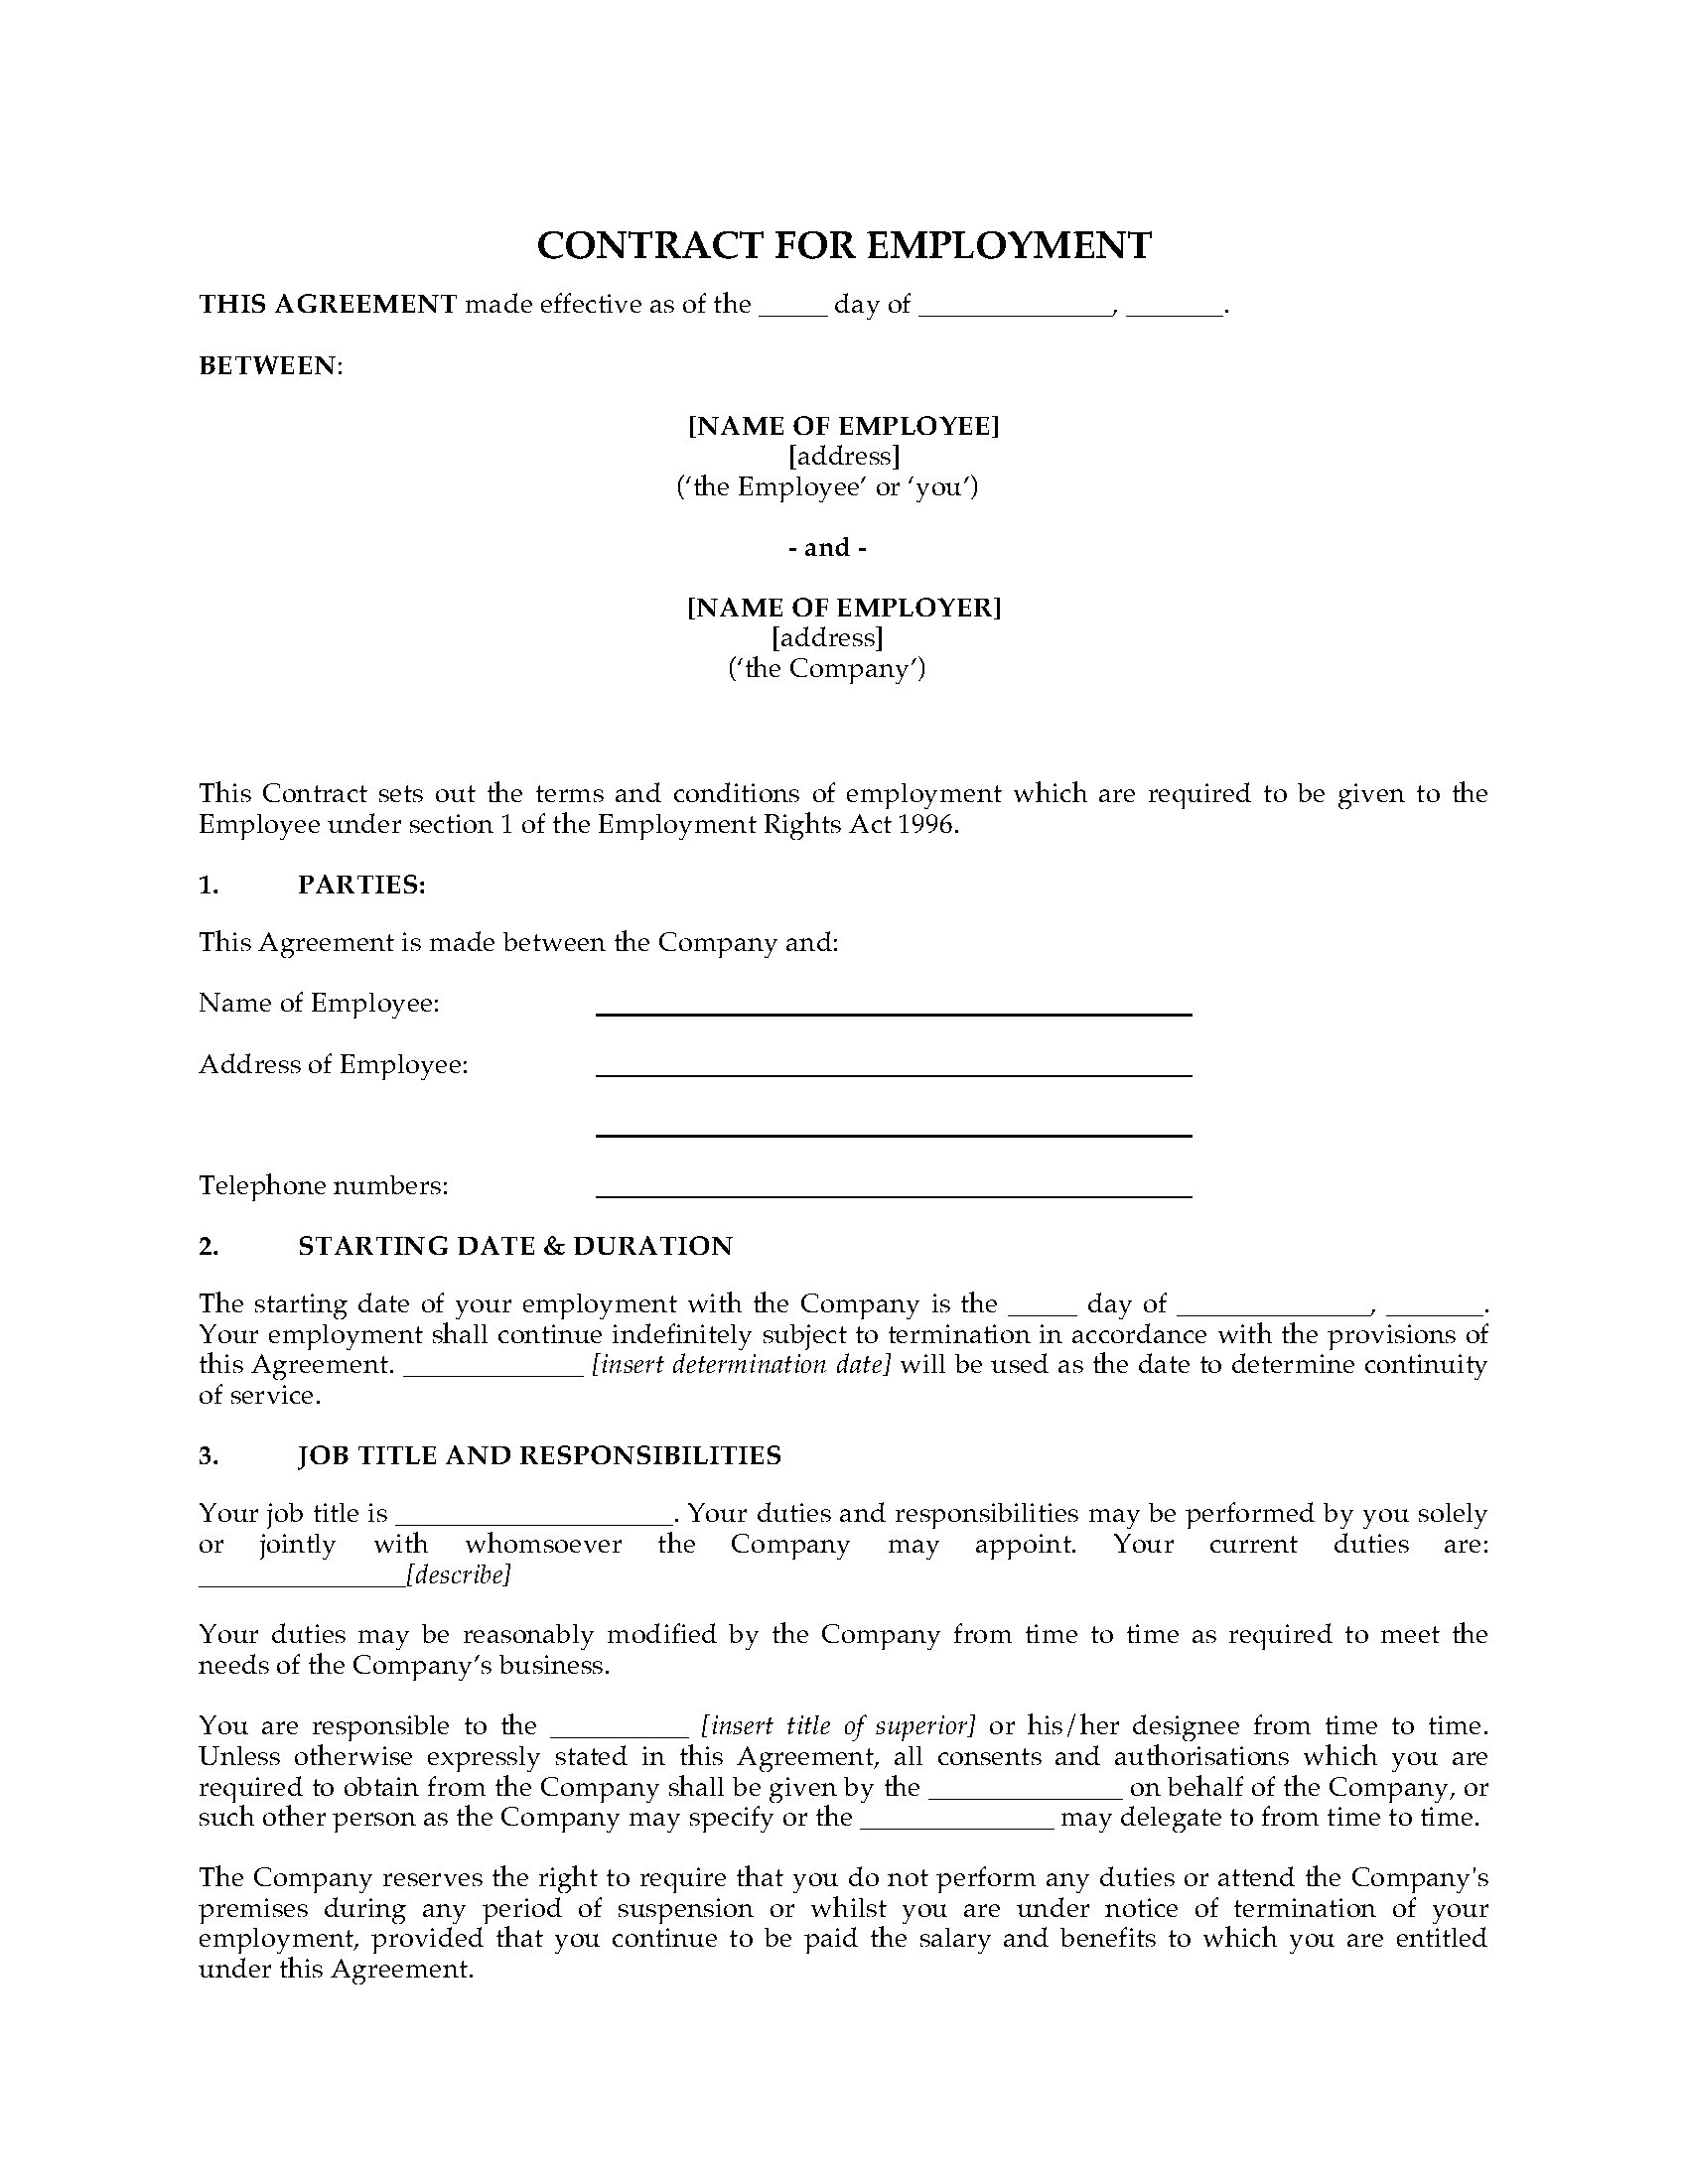 uk employment contract template